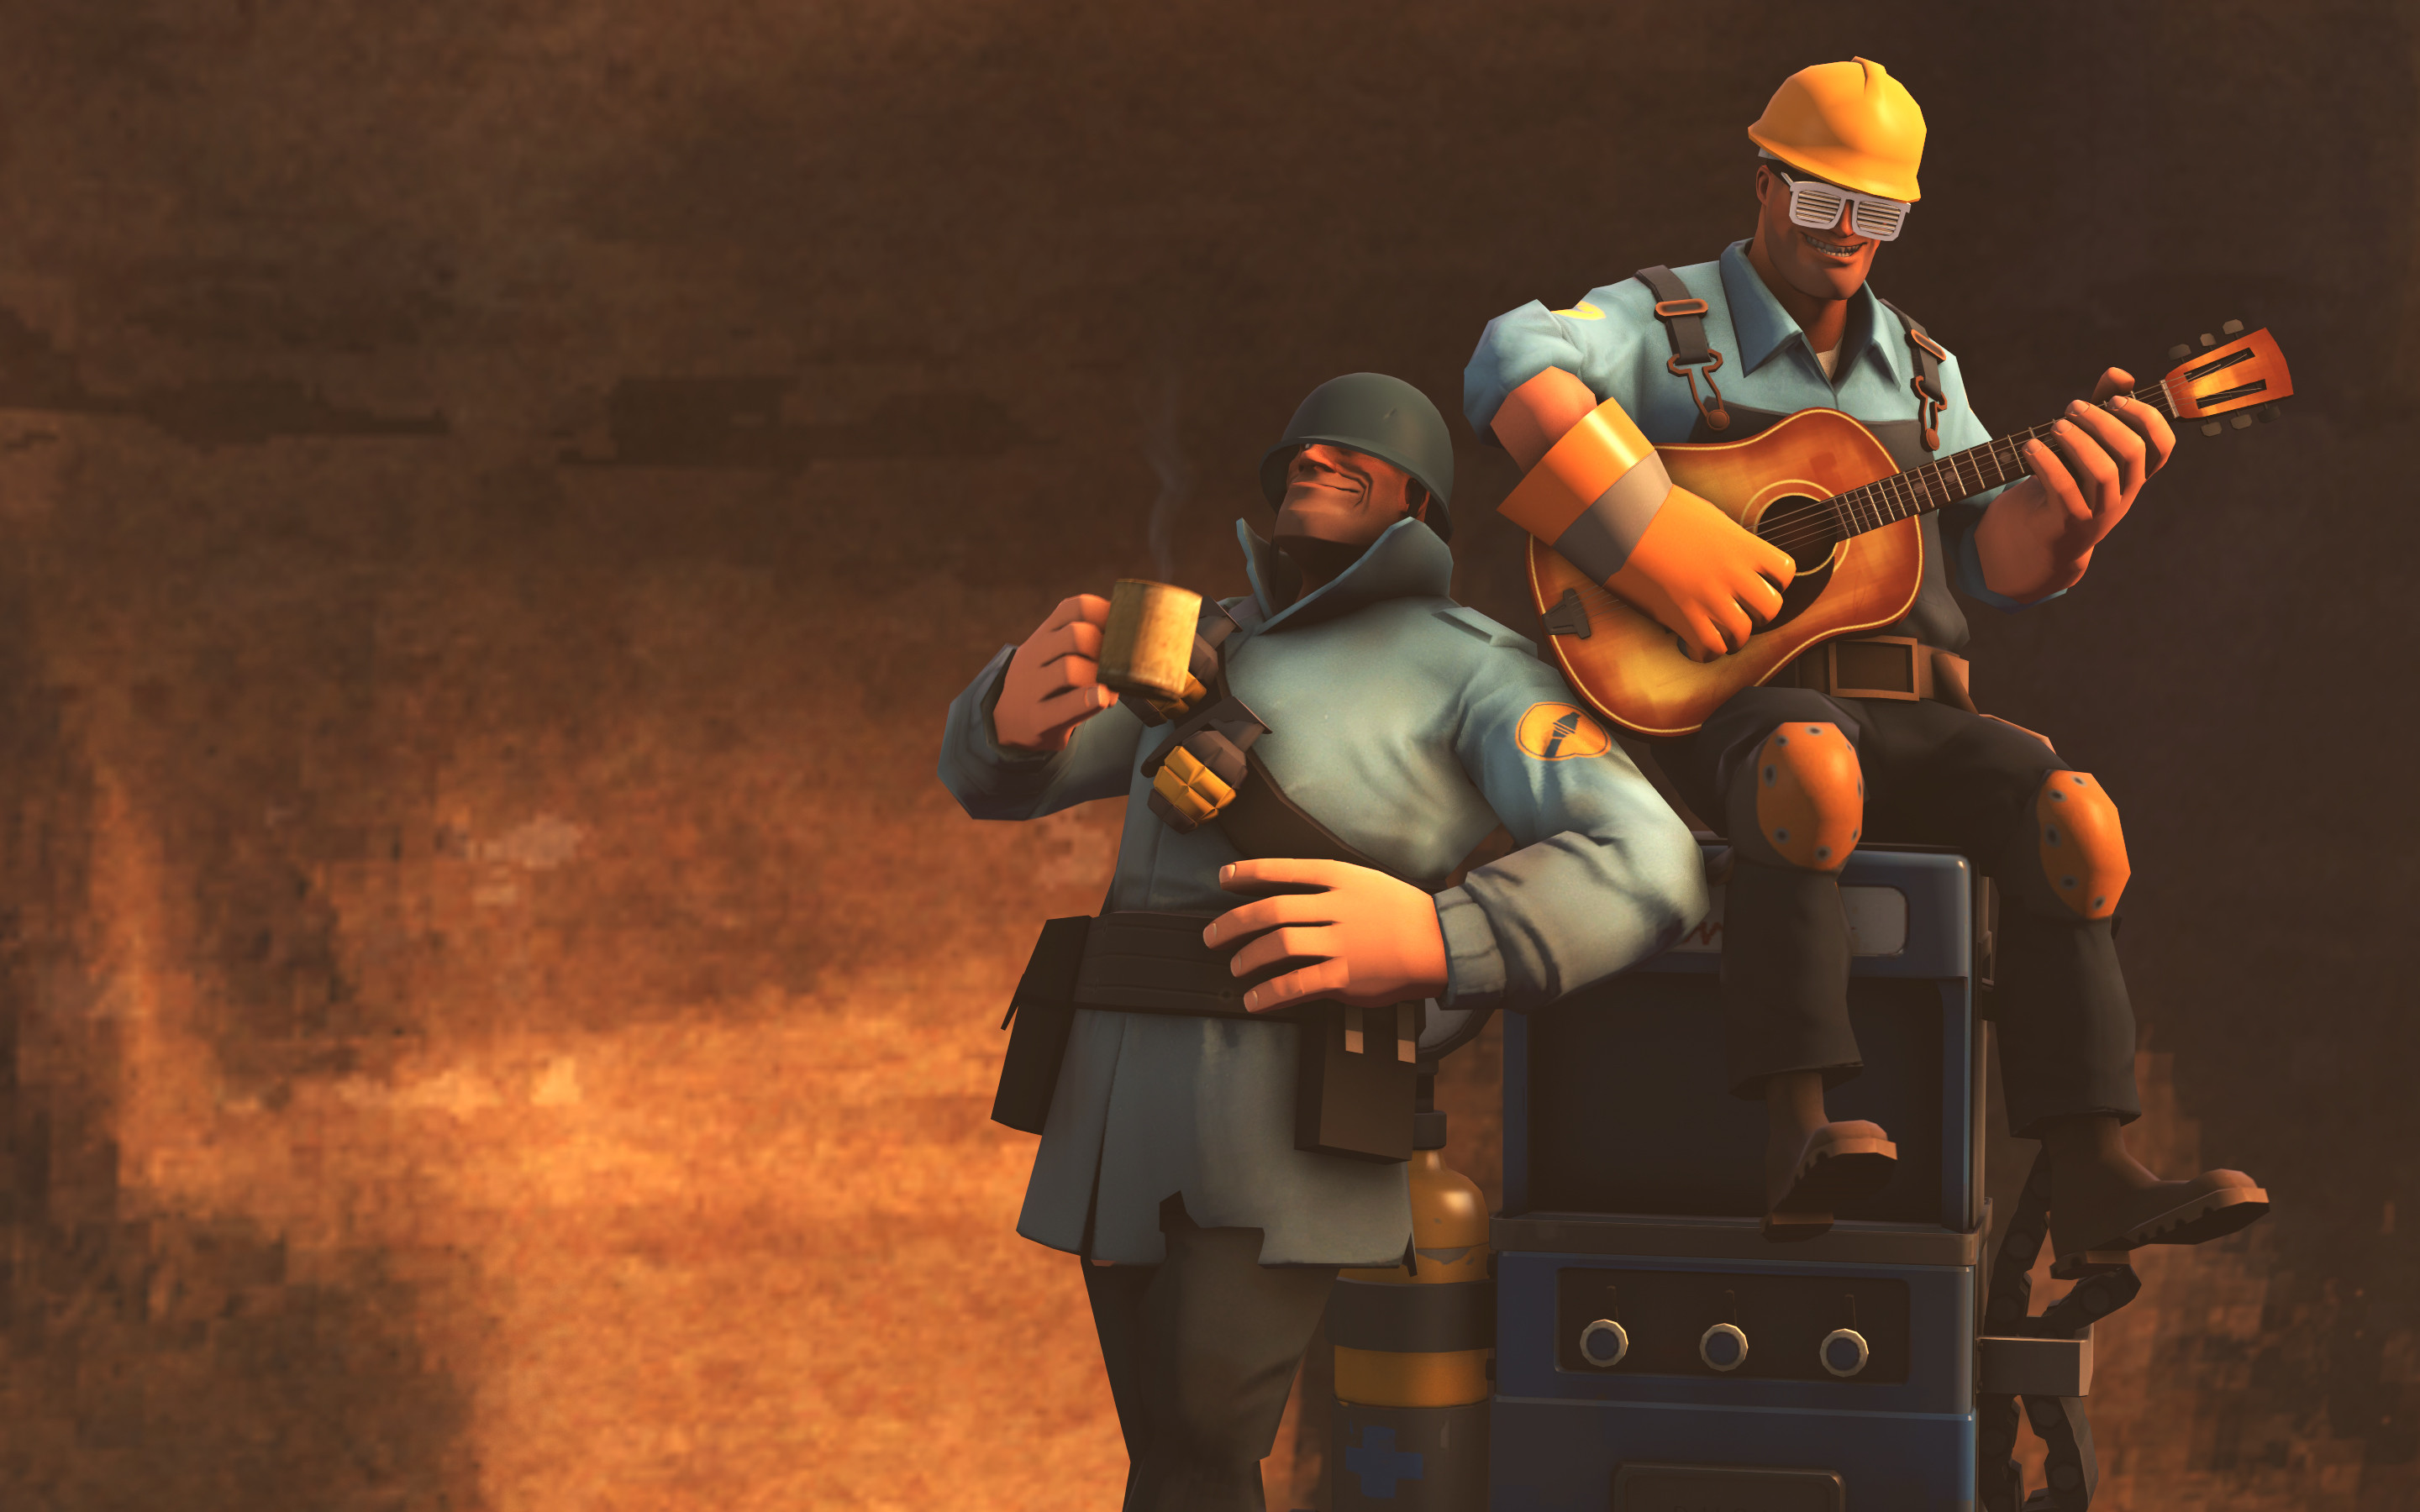 Team fortress 2 wallpaper soldier and engie chill wallpapers.